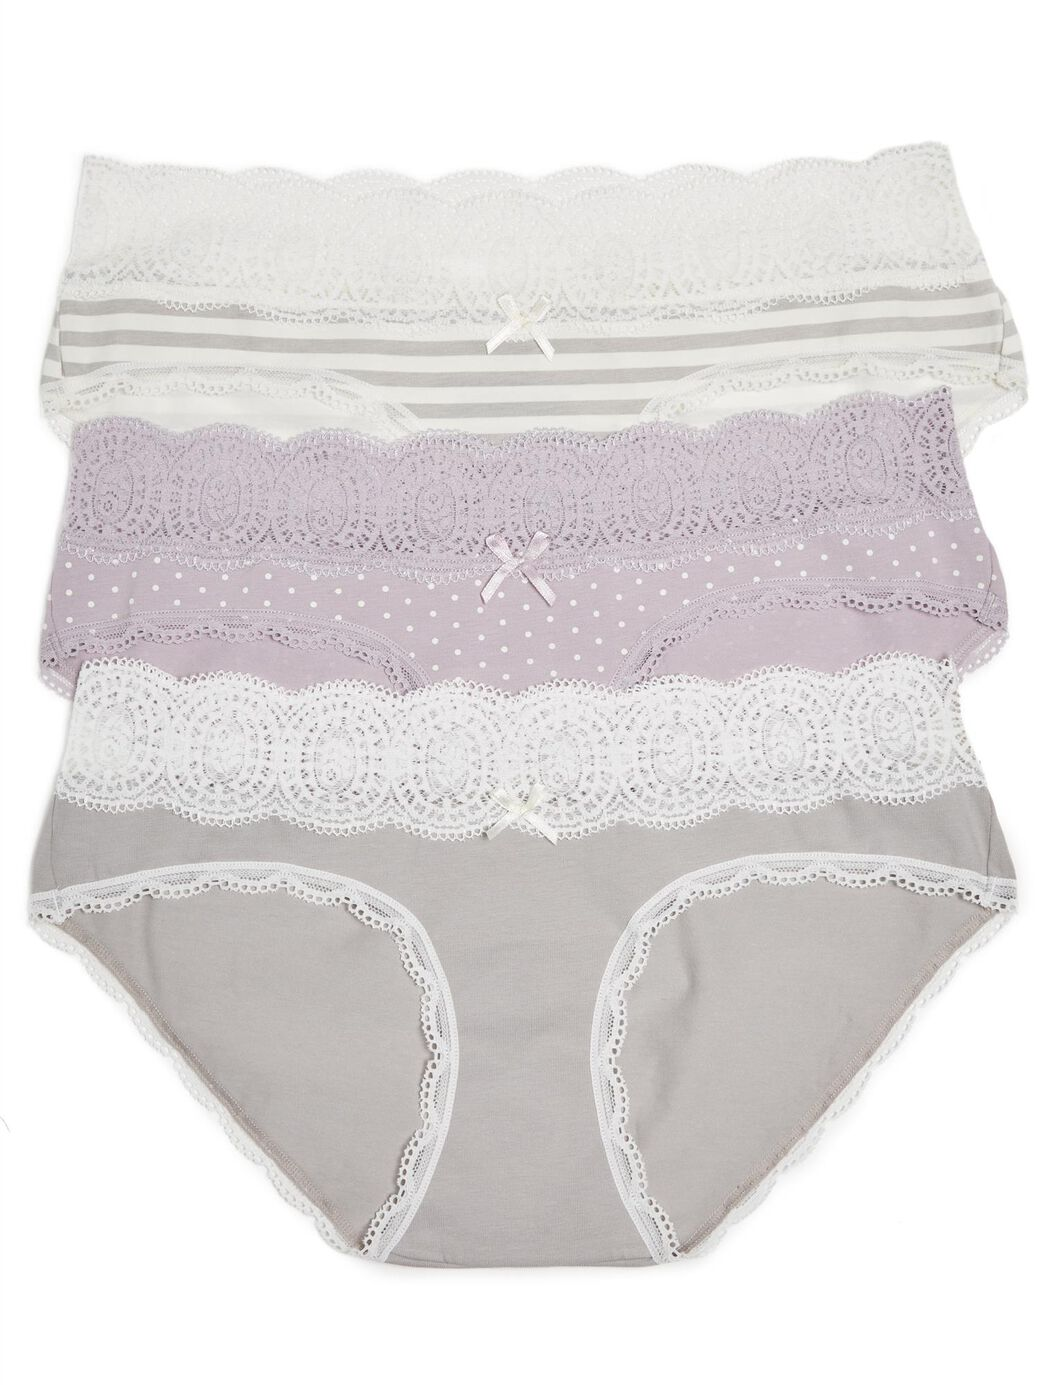 Maternity Hipster Panties (3 Pack) at Motherhood Maternity in Victor, NY | Tuggl